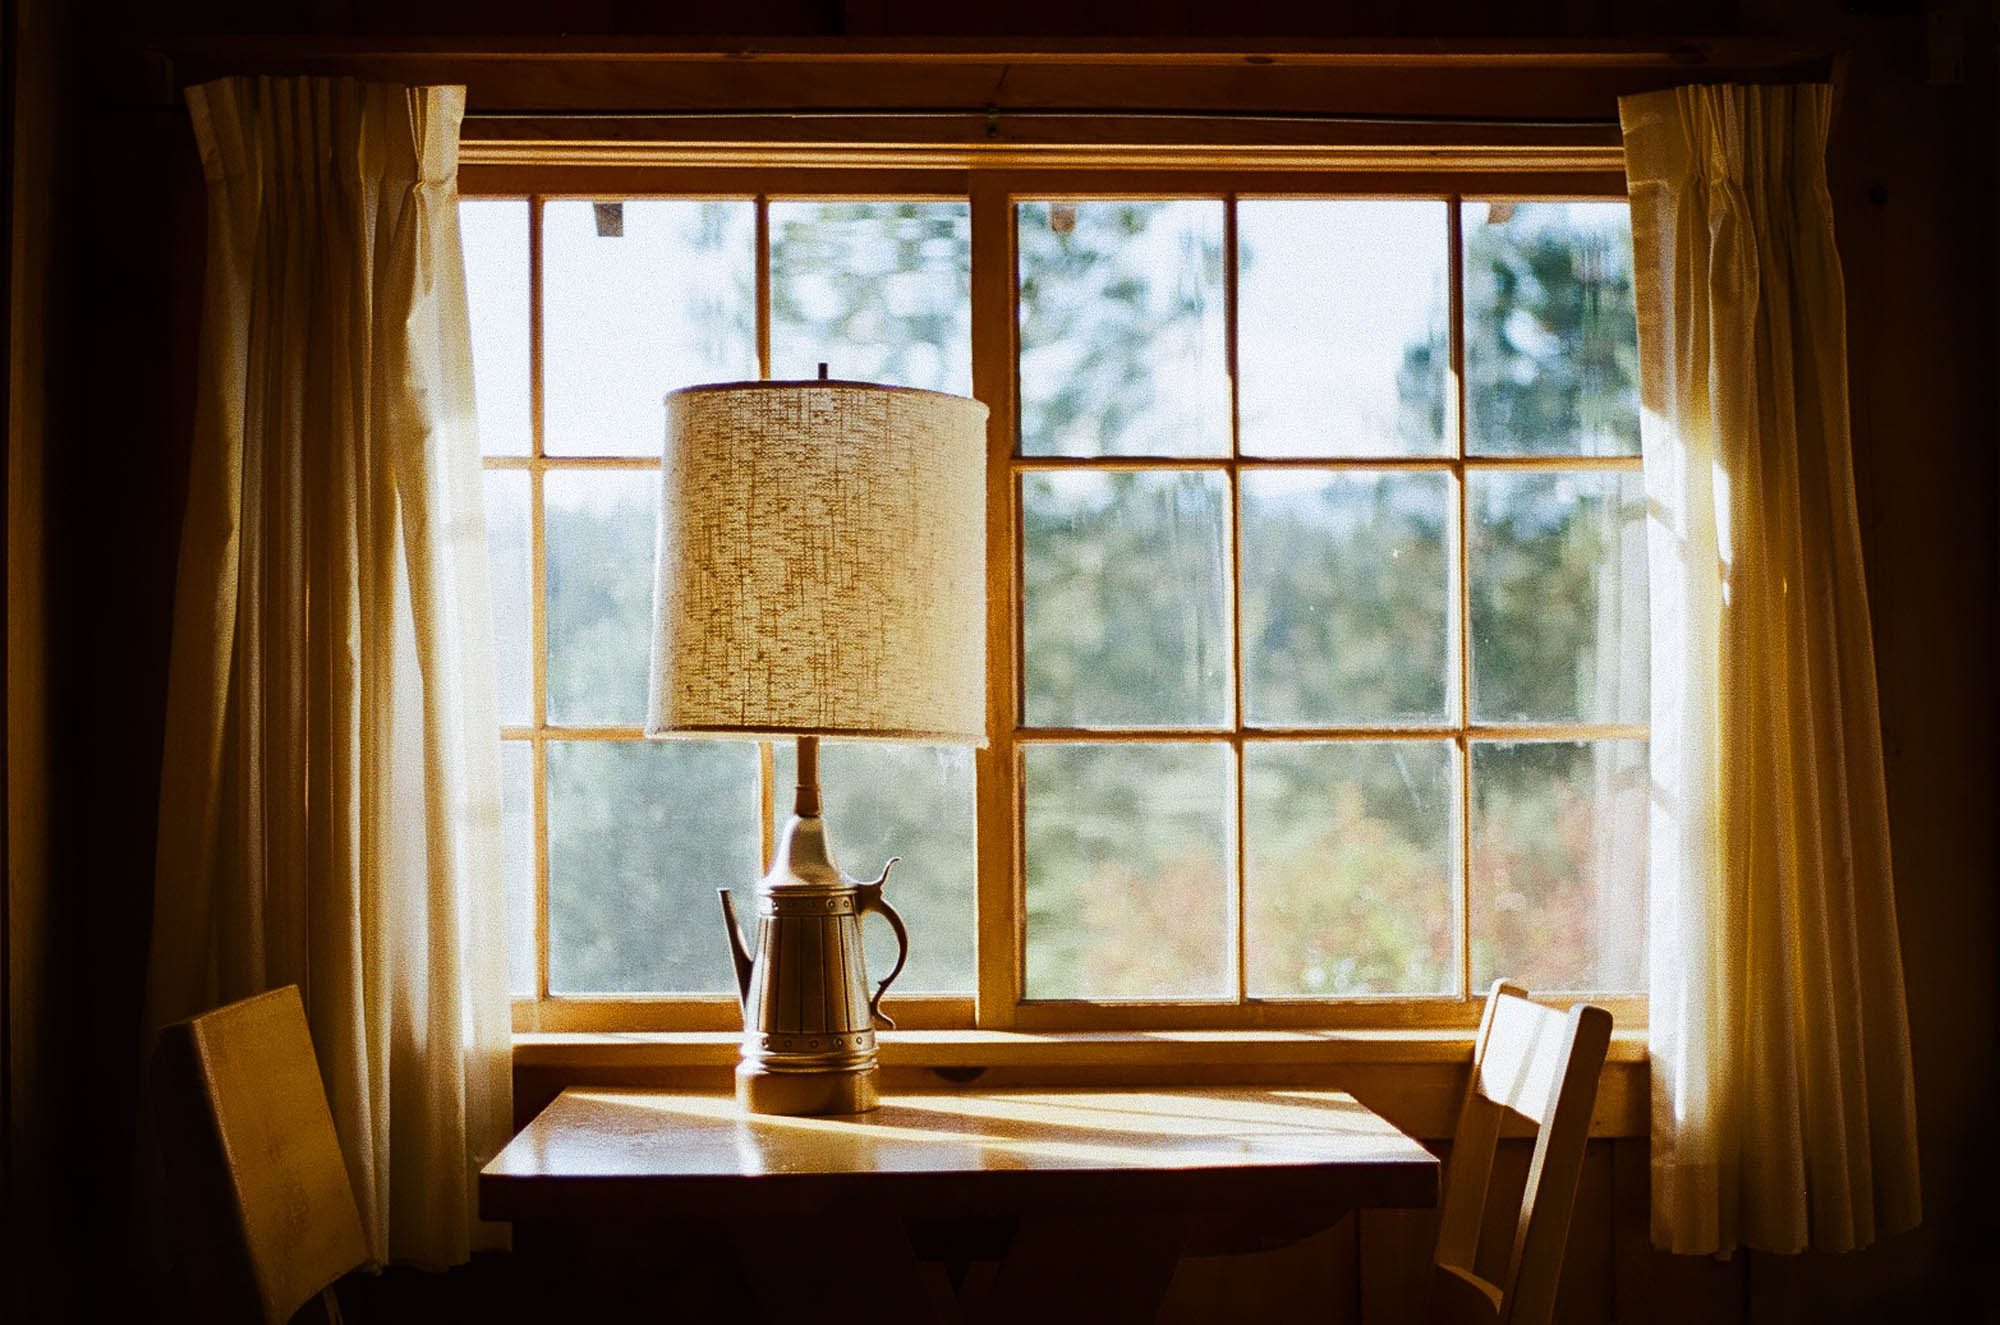 Lomography 400 ~ Canon AE-1 ~ Canon 50mm F1.8 A cosy nook in a 1920's riverside cabin catches beautiful side light